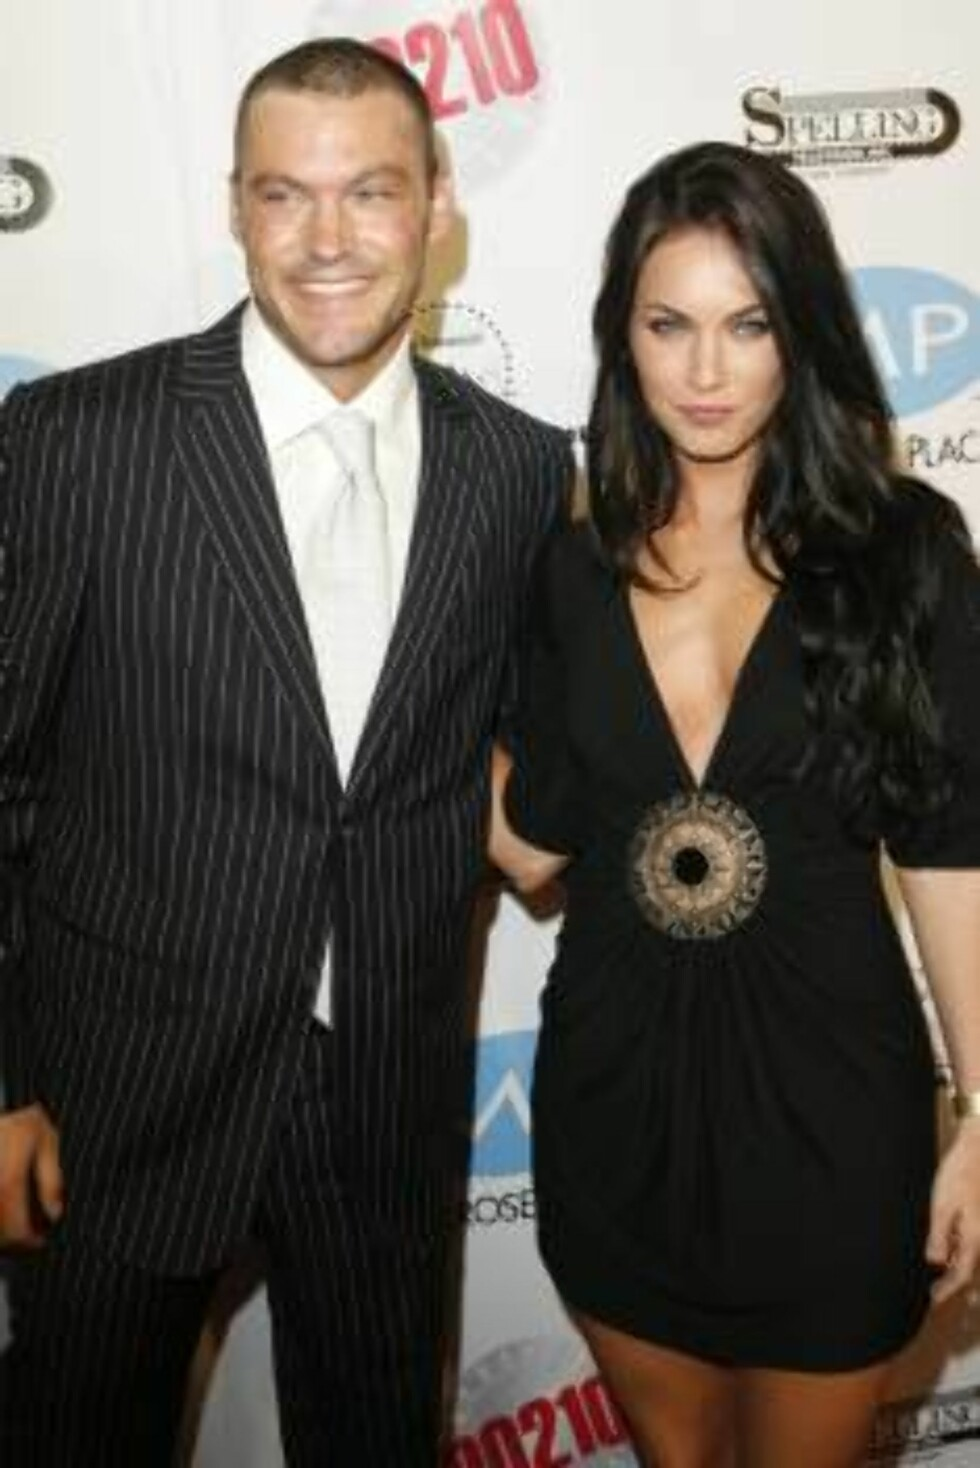 BEVERLY HILLS 2006-11-03  Brian Austin Green at the Beverly Hill's 90210 and Melrose Place DVD Launch Party held at Beverly Hilton Hotel.  Photo: Brian Lowe/jpistudios  Code: 4036  COPYRIGHT STELLA PICTURES Foto: STELLA PICTURES